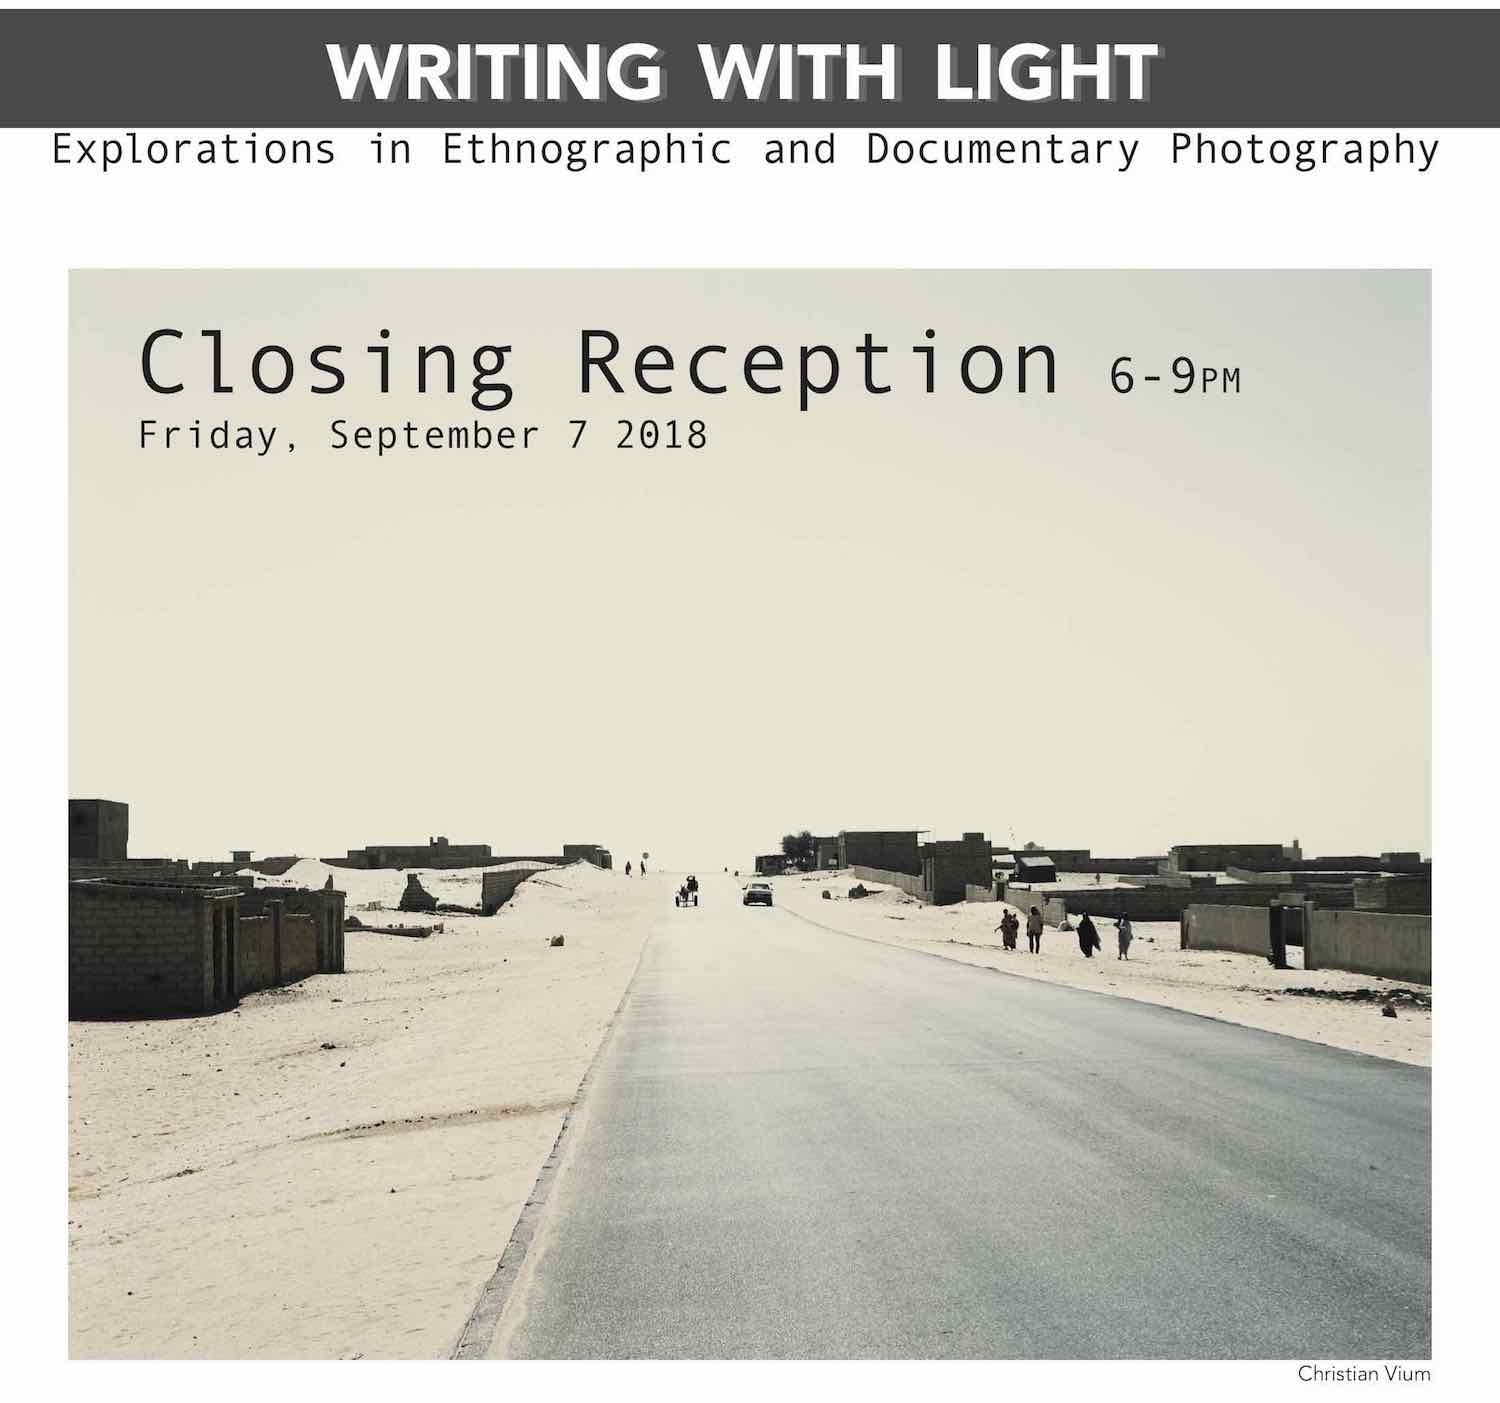 Writing with Light: Explorations in Ethnographic and Documentary Photography